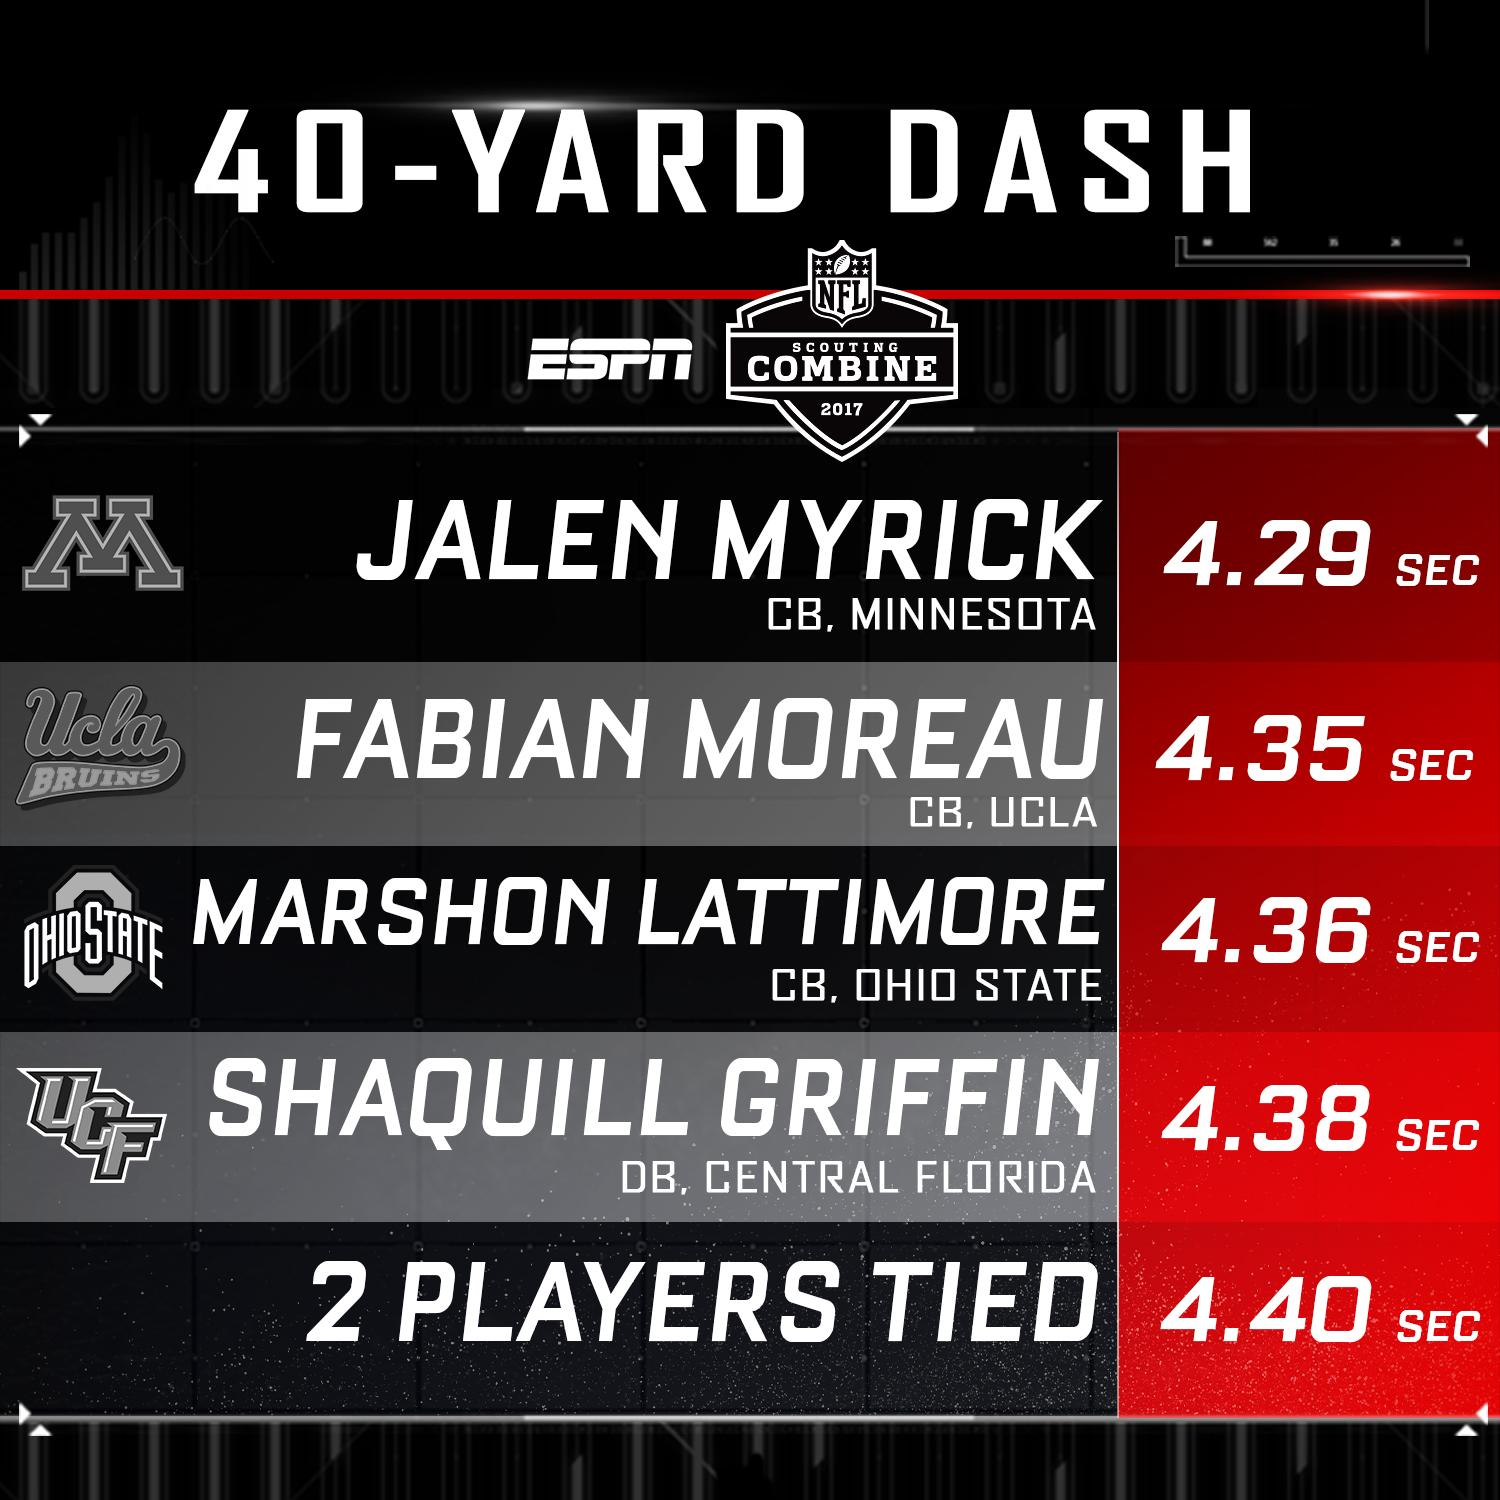 The DB group wasn't messing around in the 40-yard dash Monday. https://t.co/IzzvQFPOdK